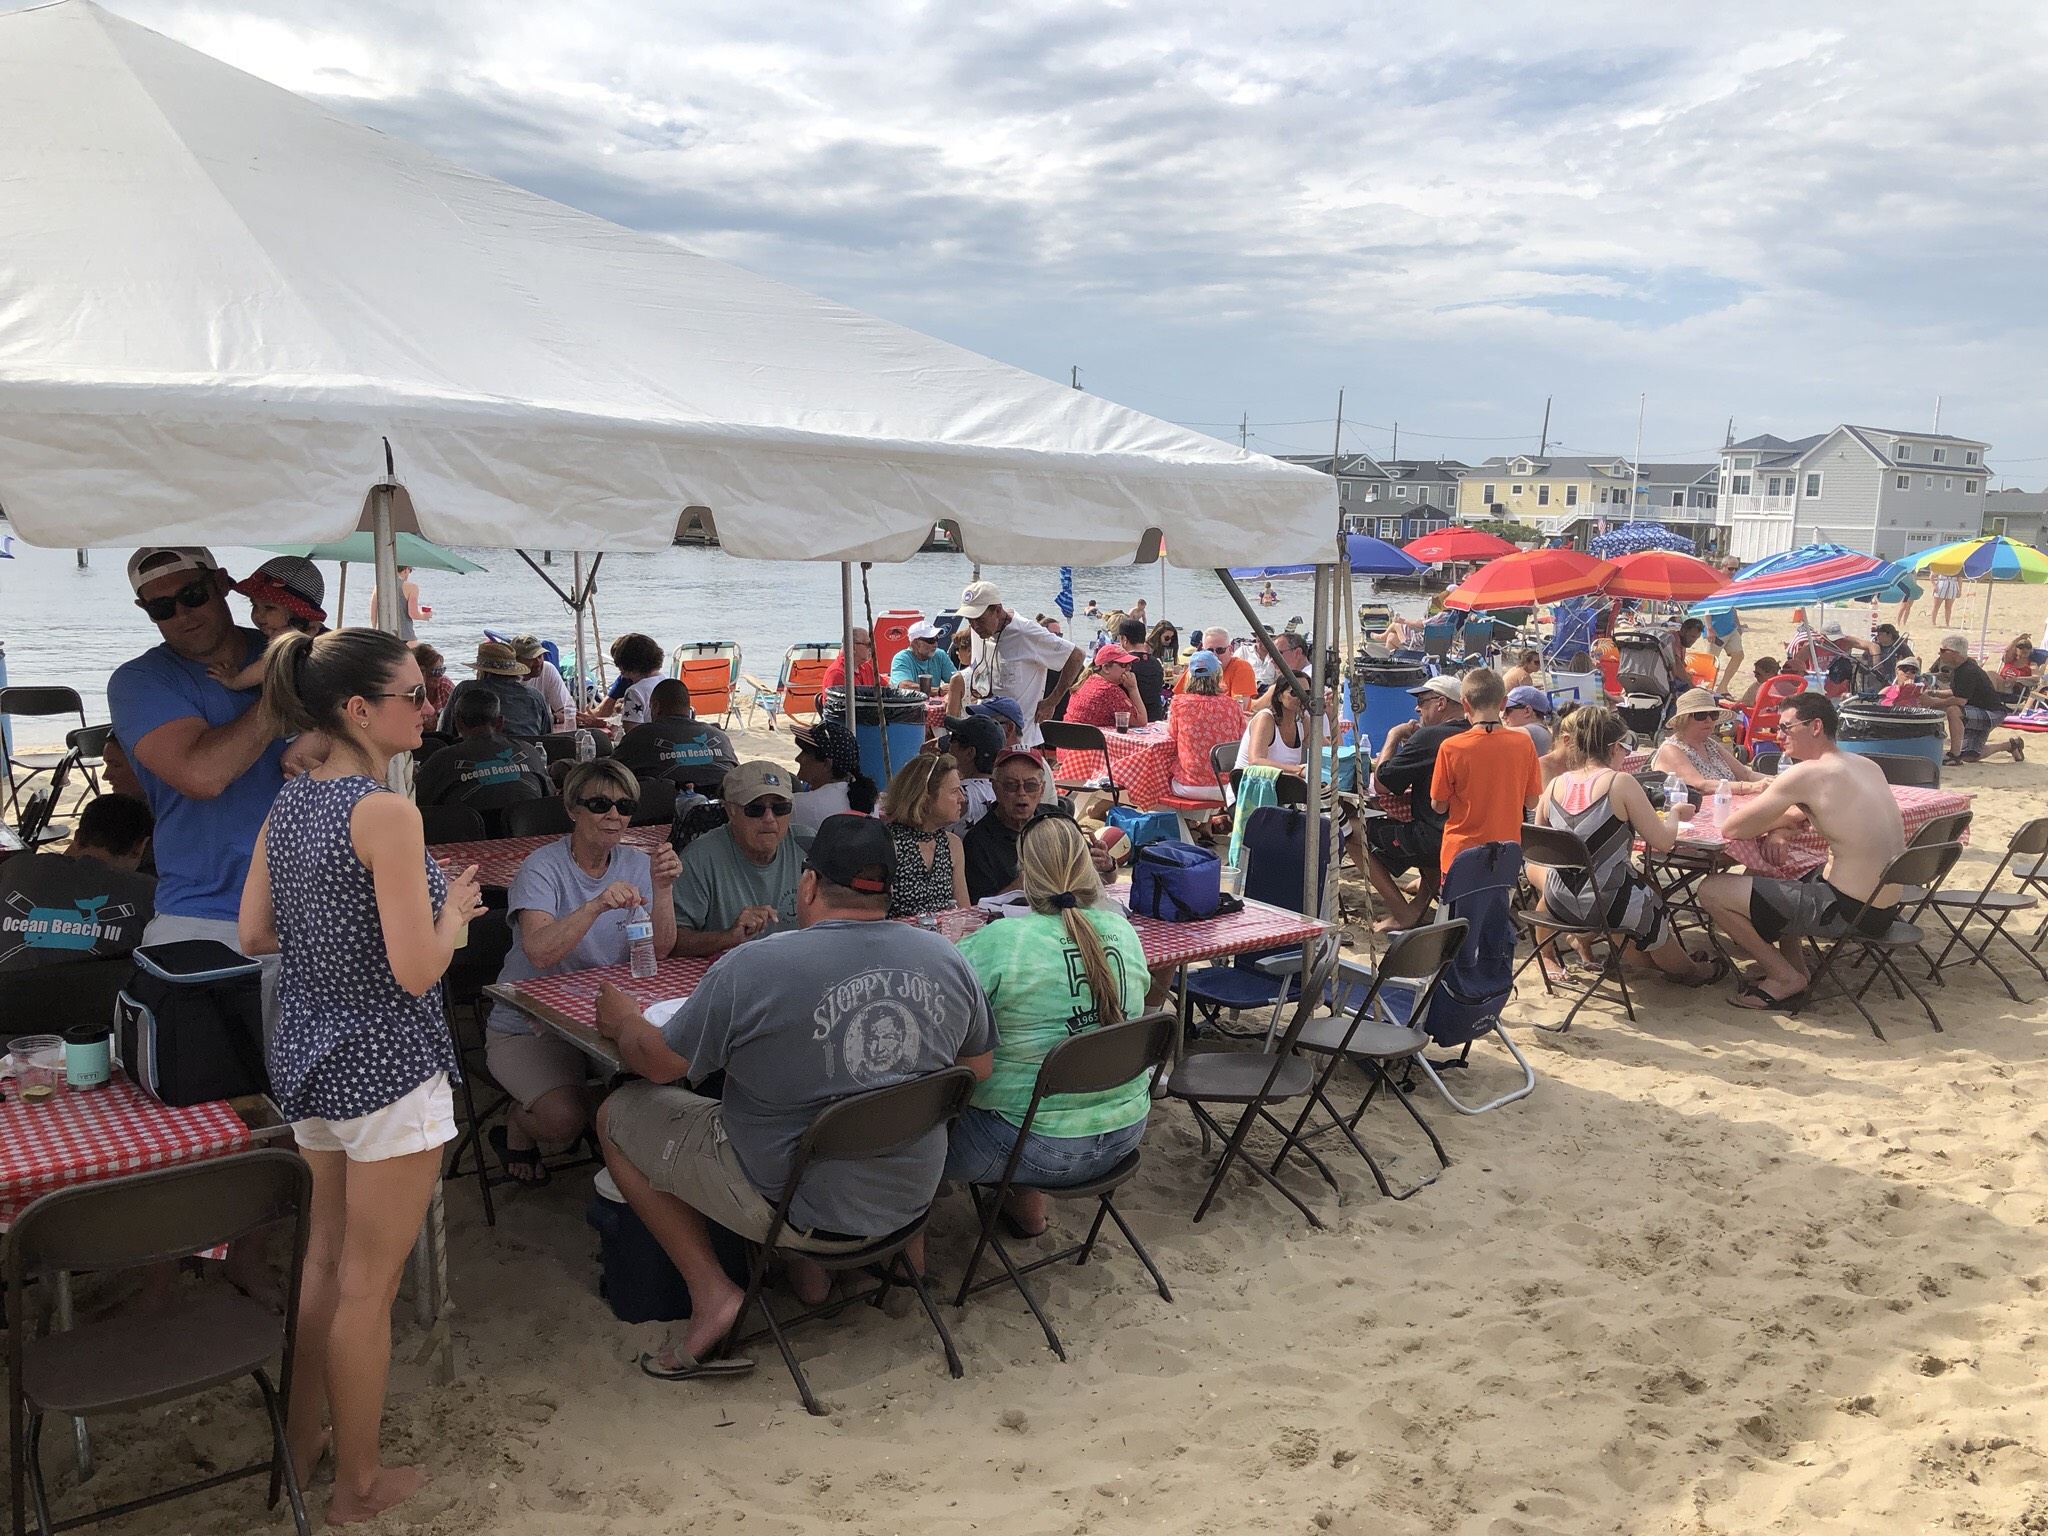 Crowds at Pig Roast